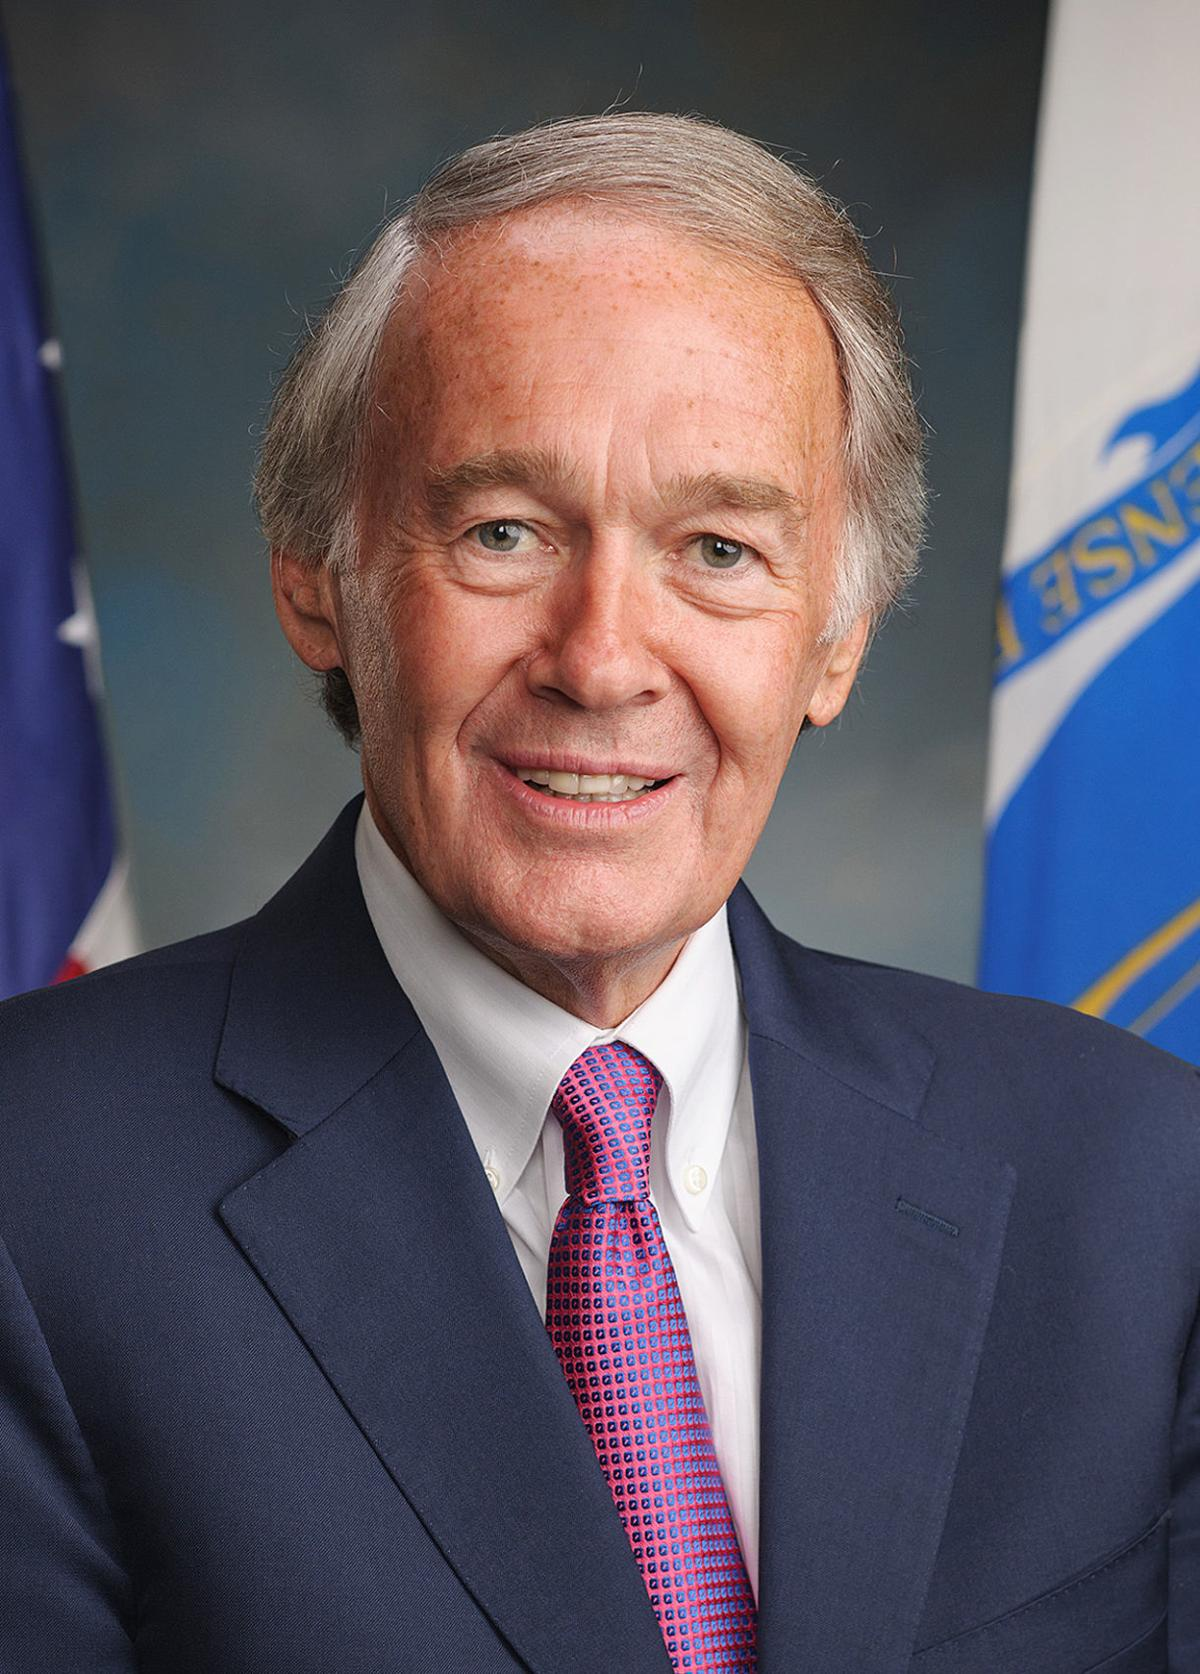 Edward Markey